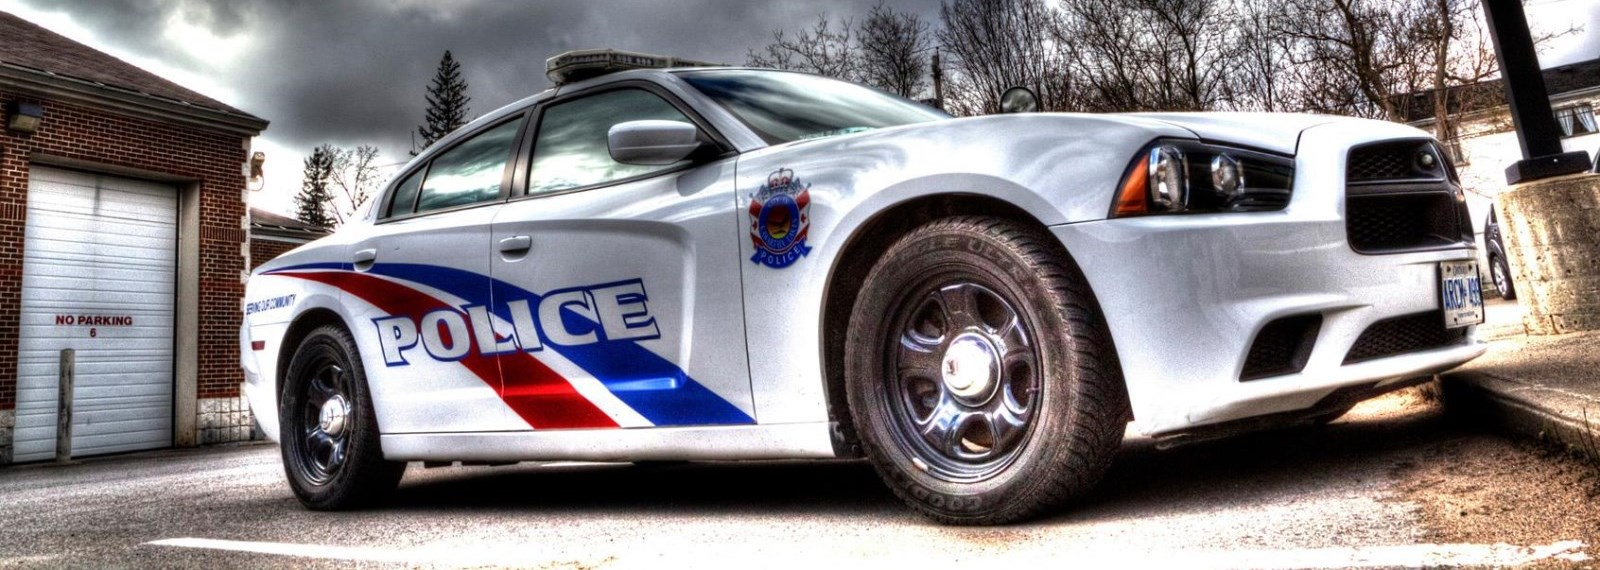 Lindsay man charged after allegedly trying to flee from police while impaired